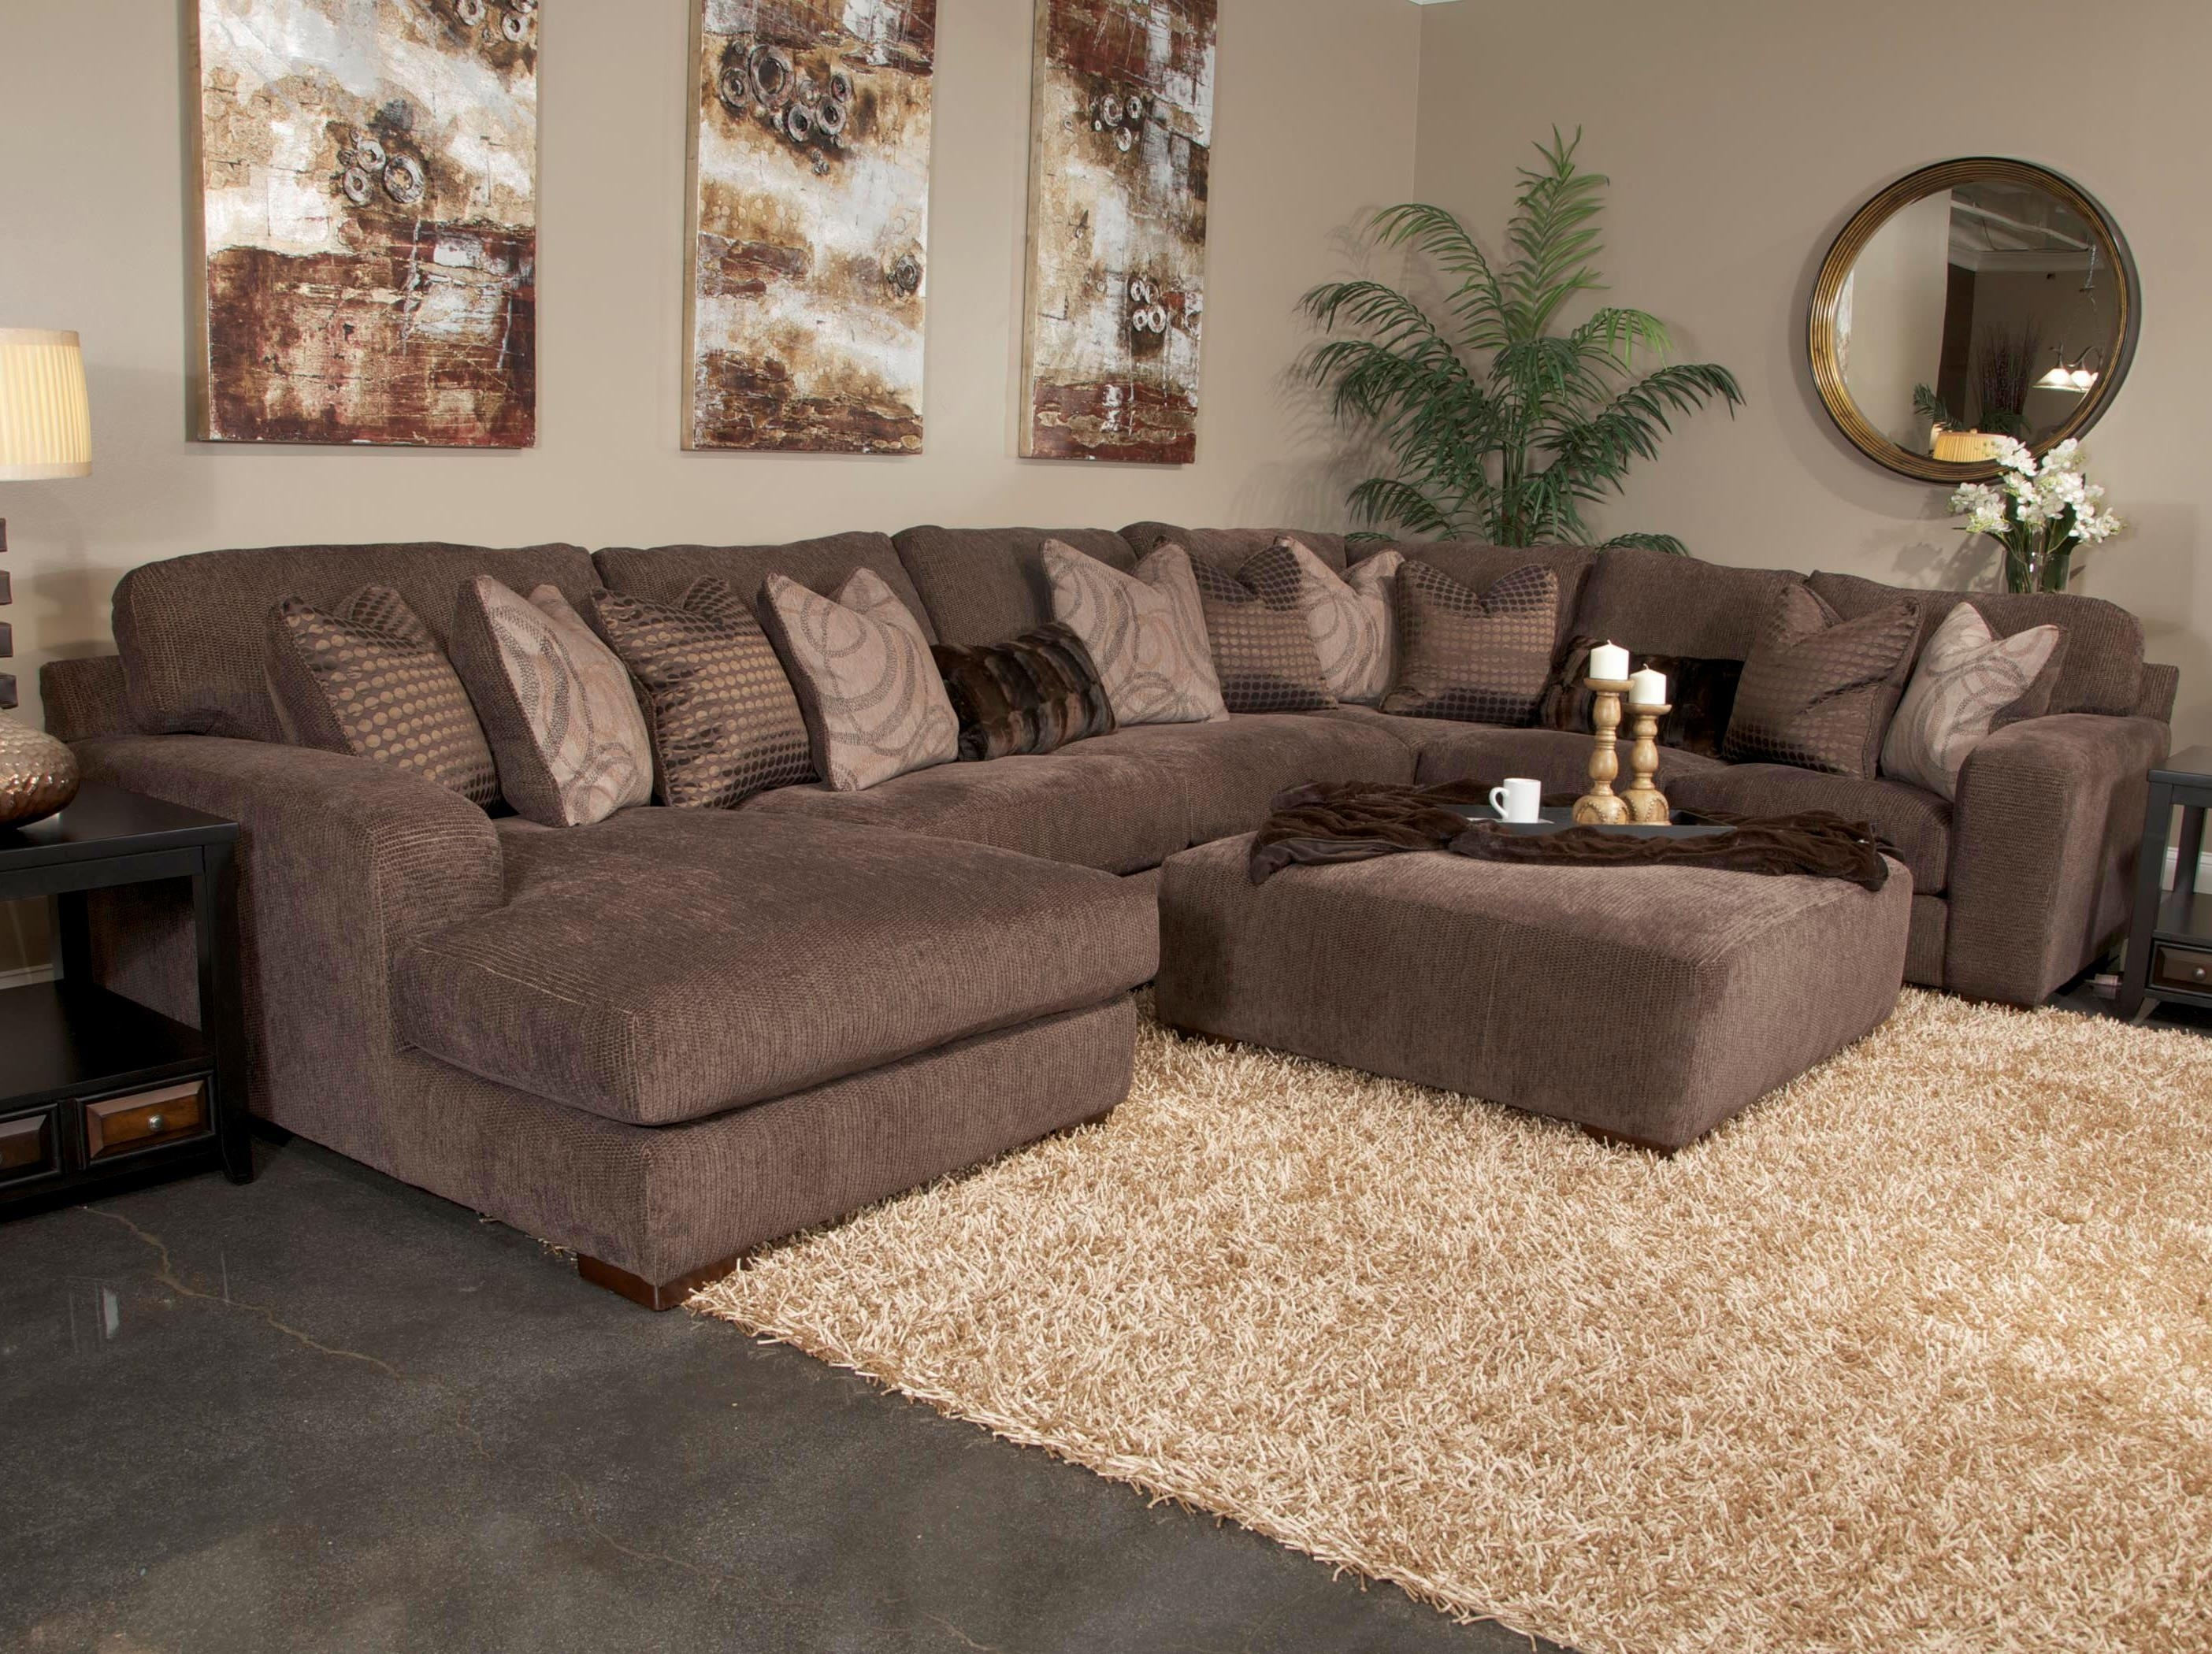 New Big Lots Sectional Sofa (34 Photos) | Clubanfi In Gardiners Sectional Sofas (Photo 4 of 10)